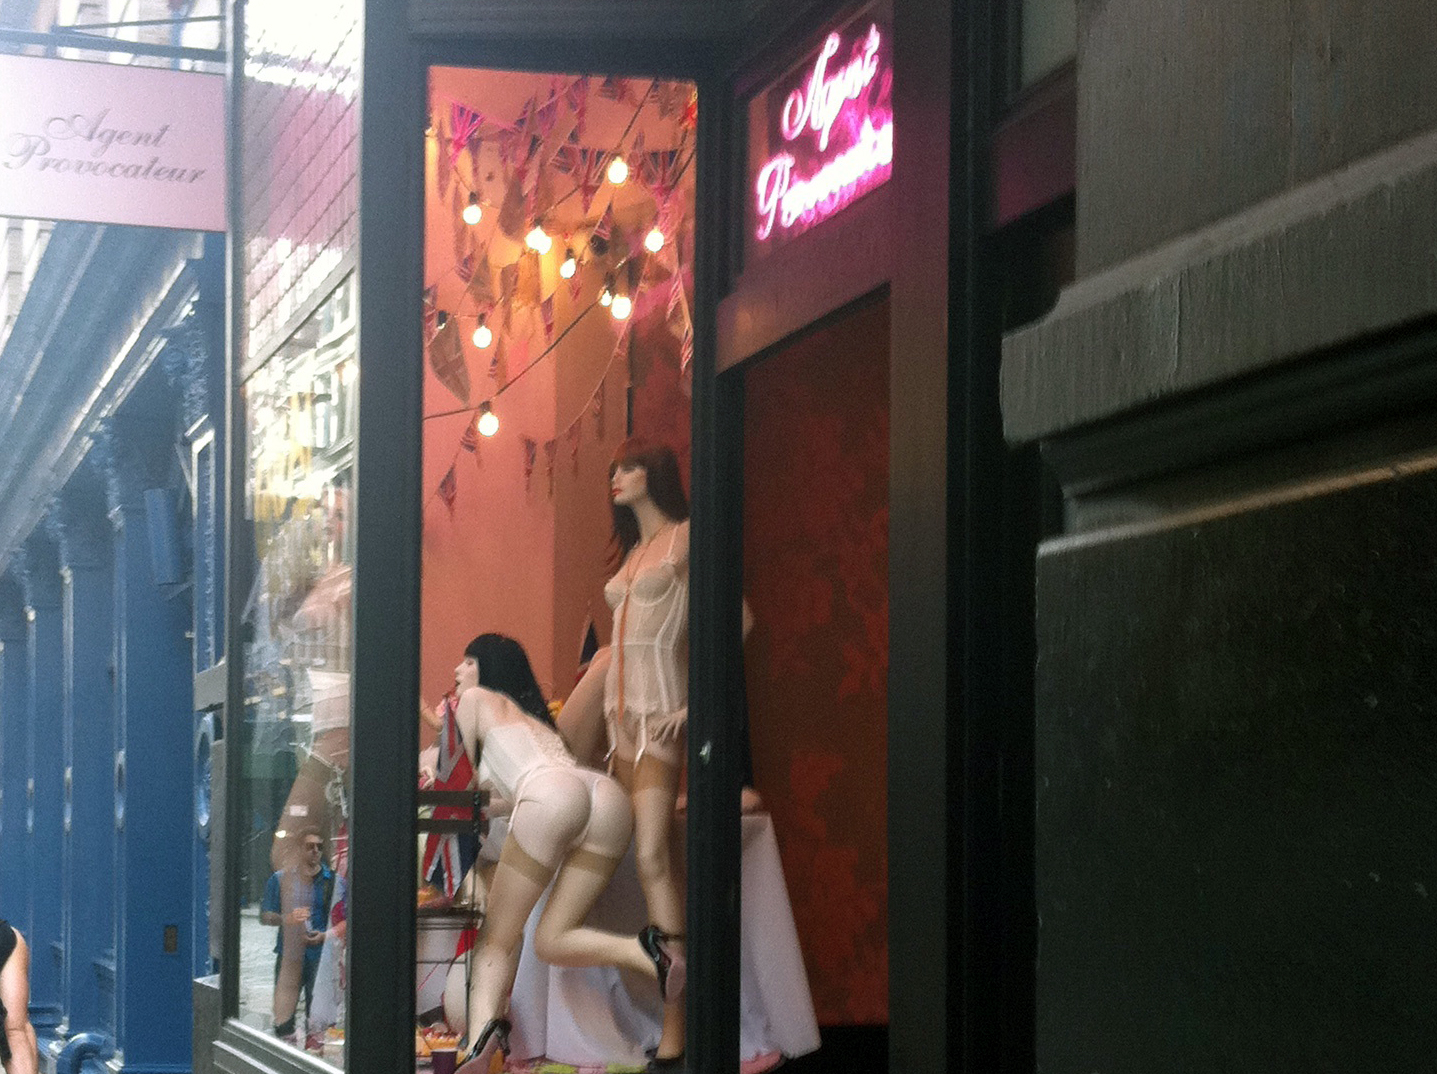 Store front at Agent Provocateur in New York. Photo by alphacityguides.